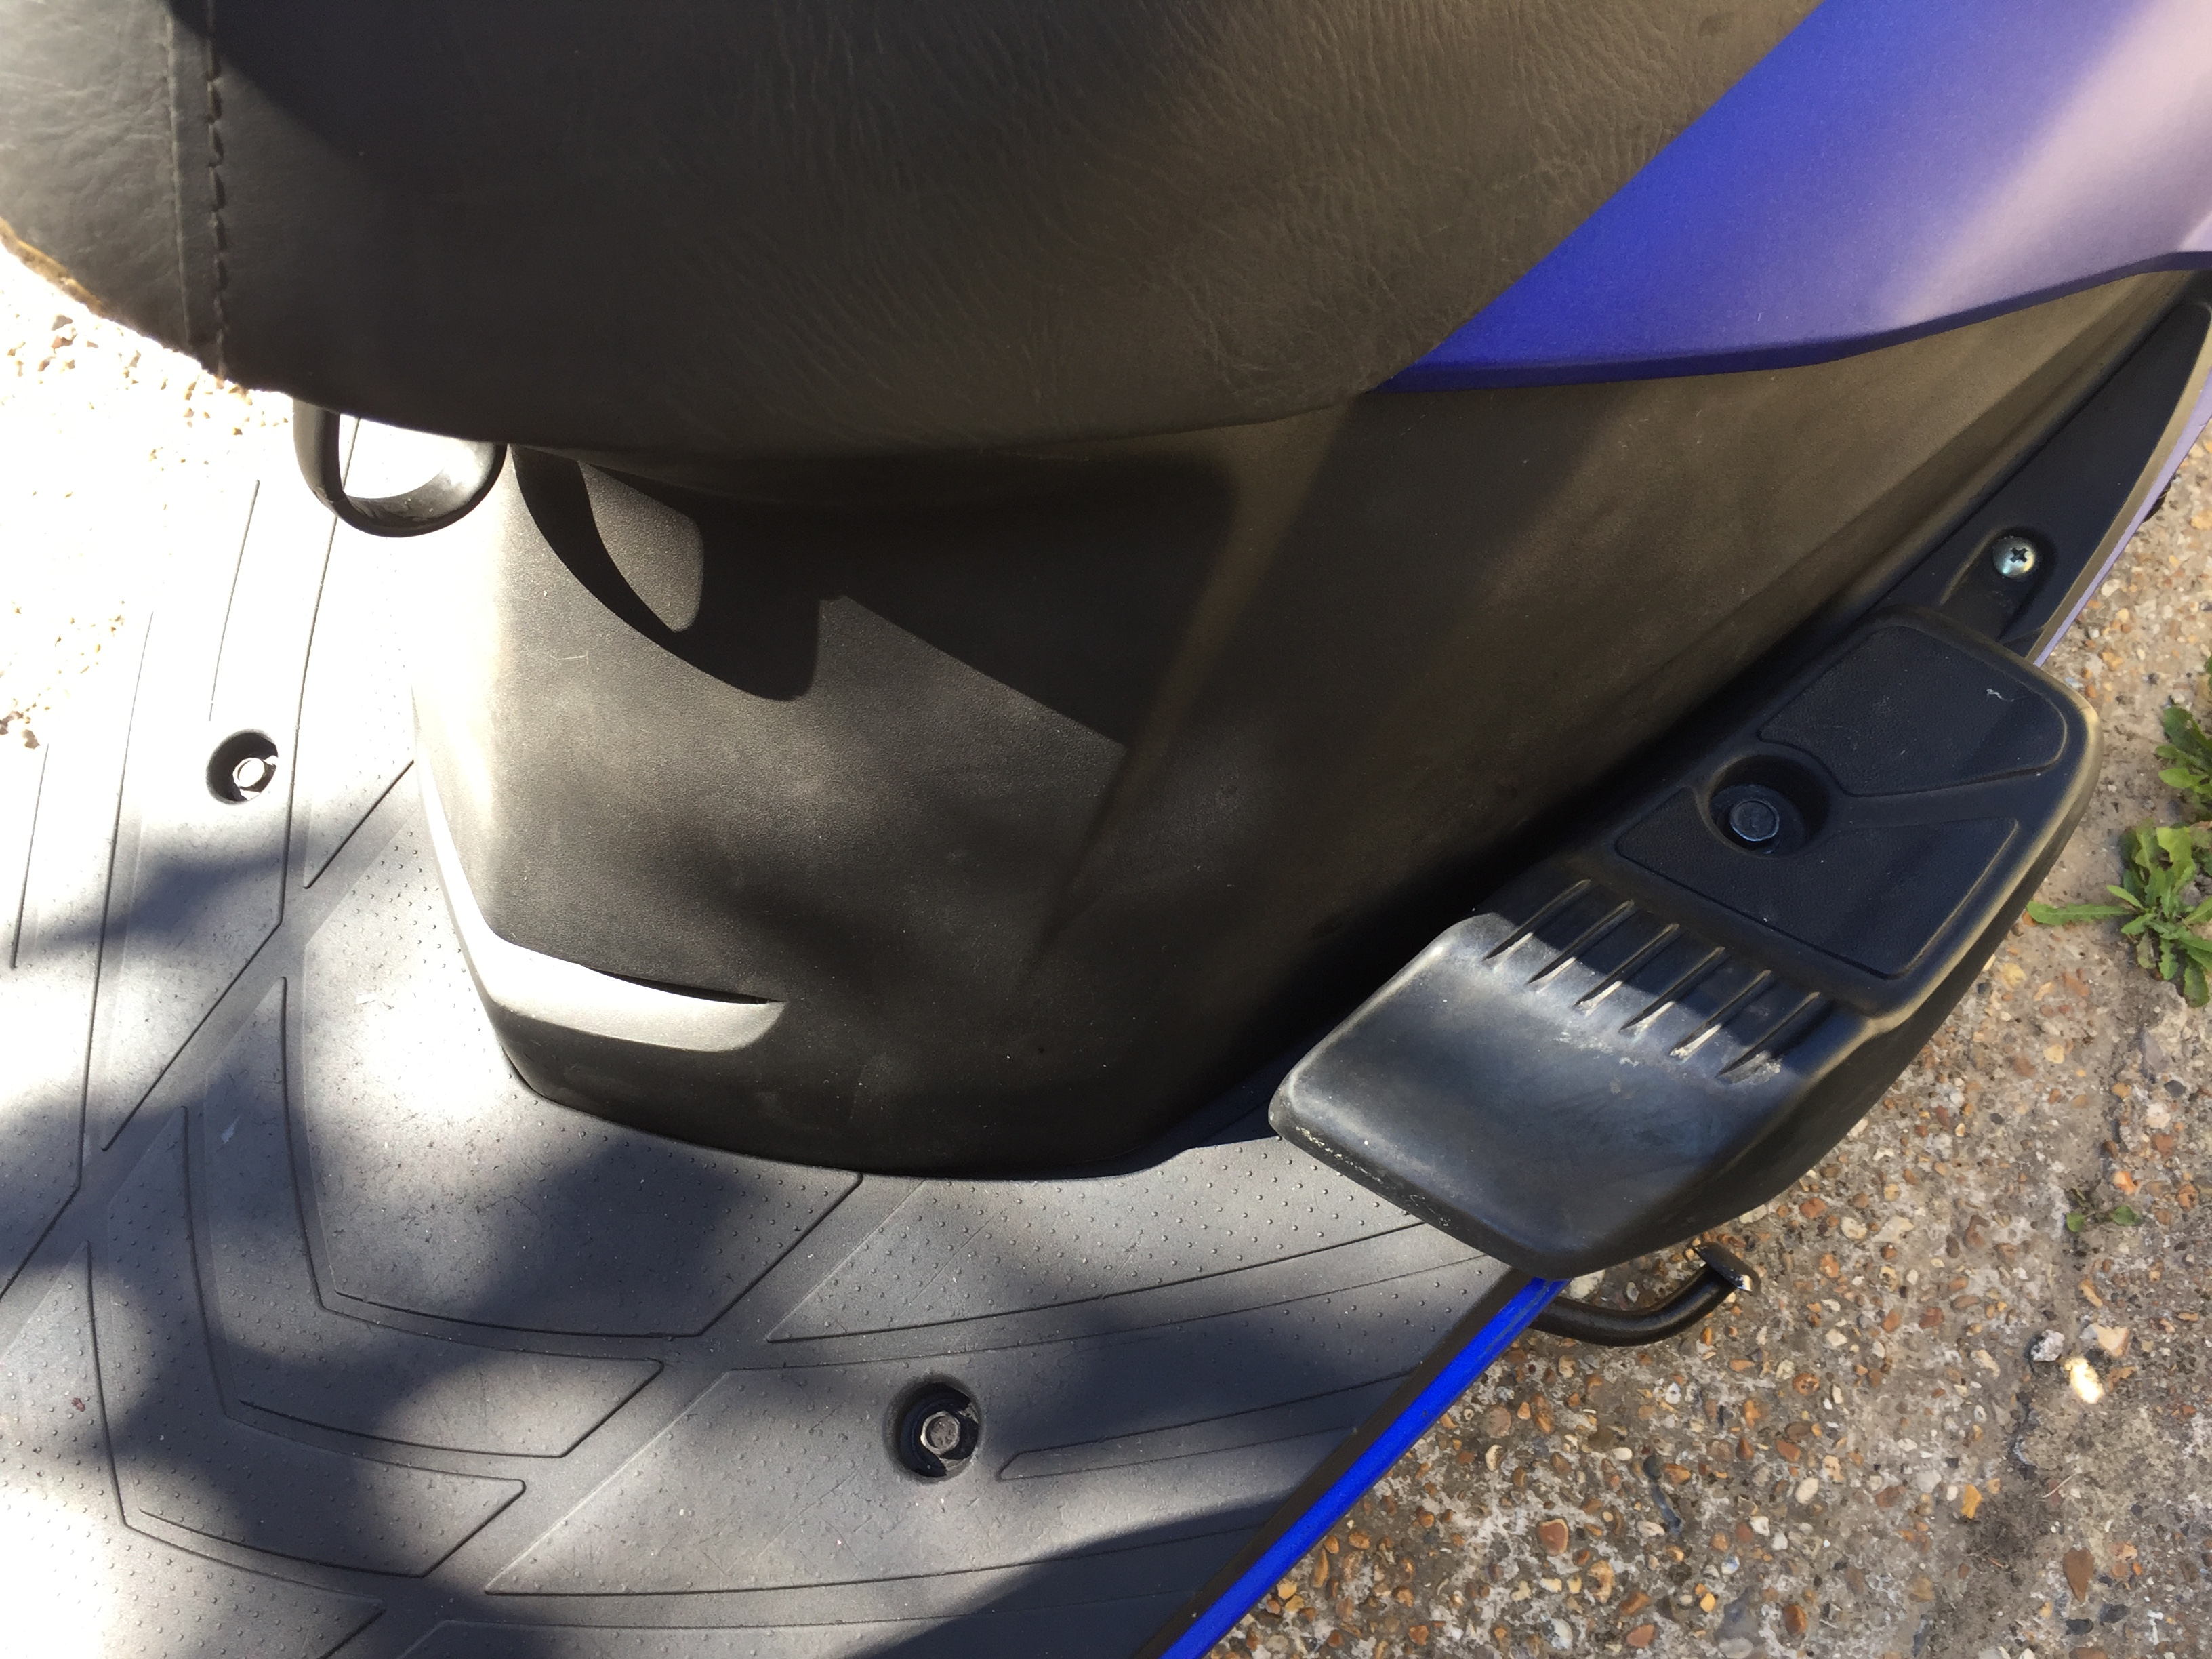 Honda SCV 100 Lead Foot rests